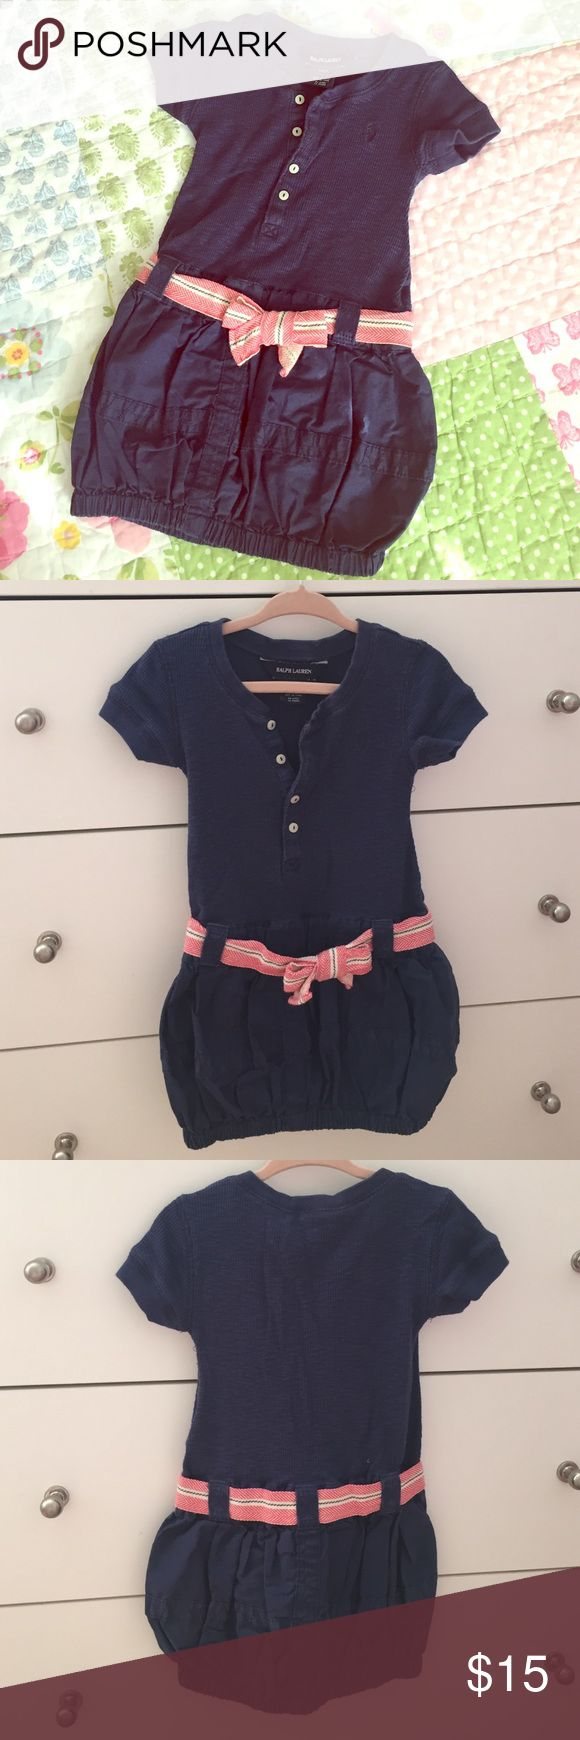 Ralph Lauren girls dress EUC. Blue navy knit top and elastic bottom woven balloon skirt with red& navy waist ribbon. Price is firm. 10% discount for bundle of 2 or more. Thanks! Ralph Lauren Dresses Casual